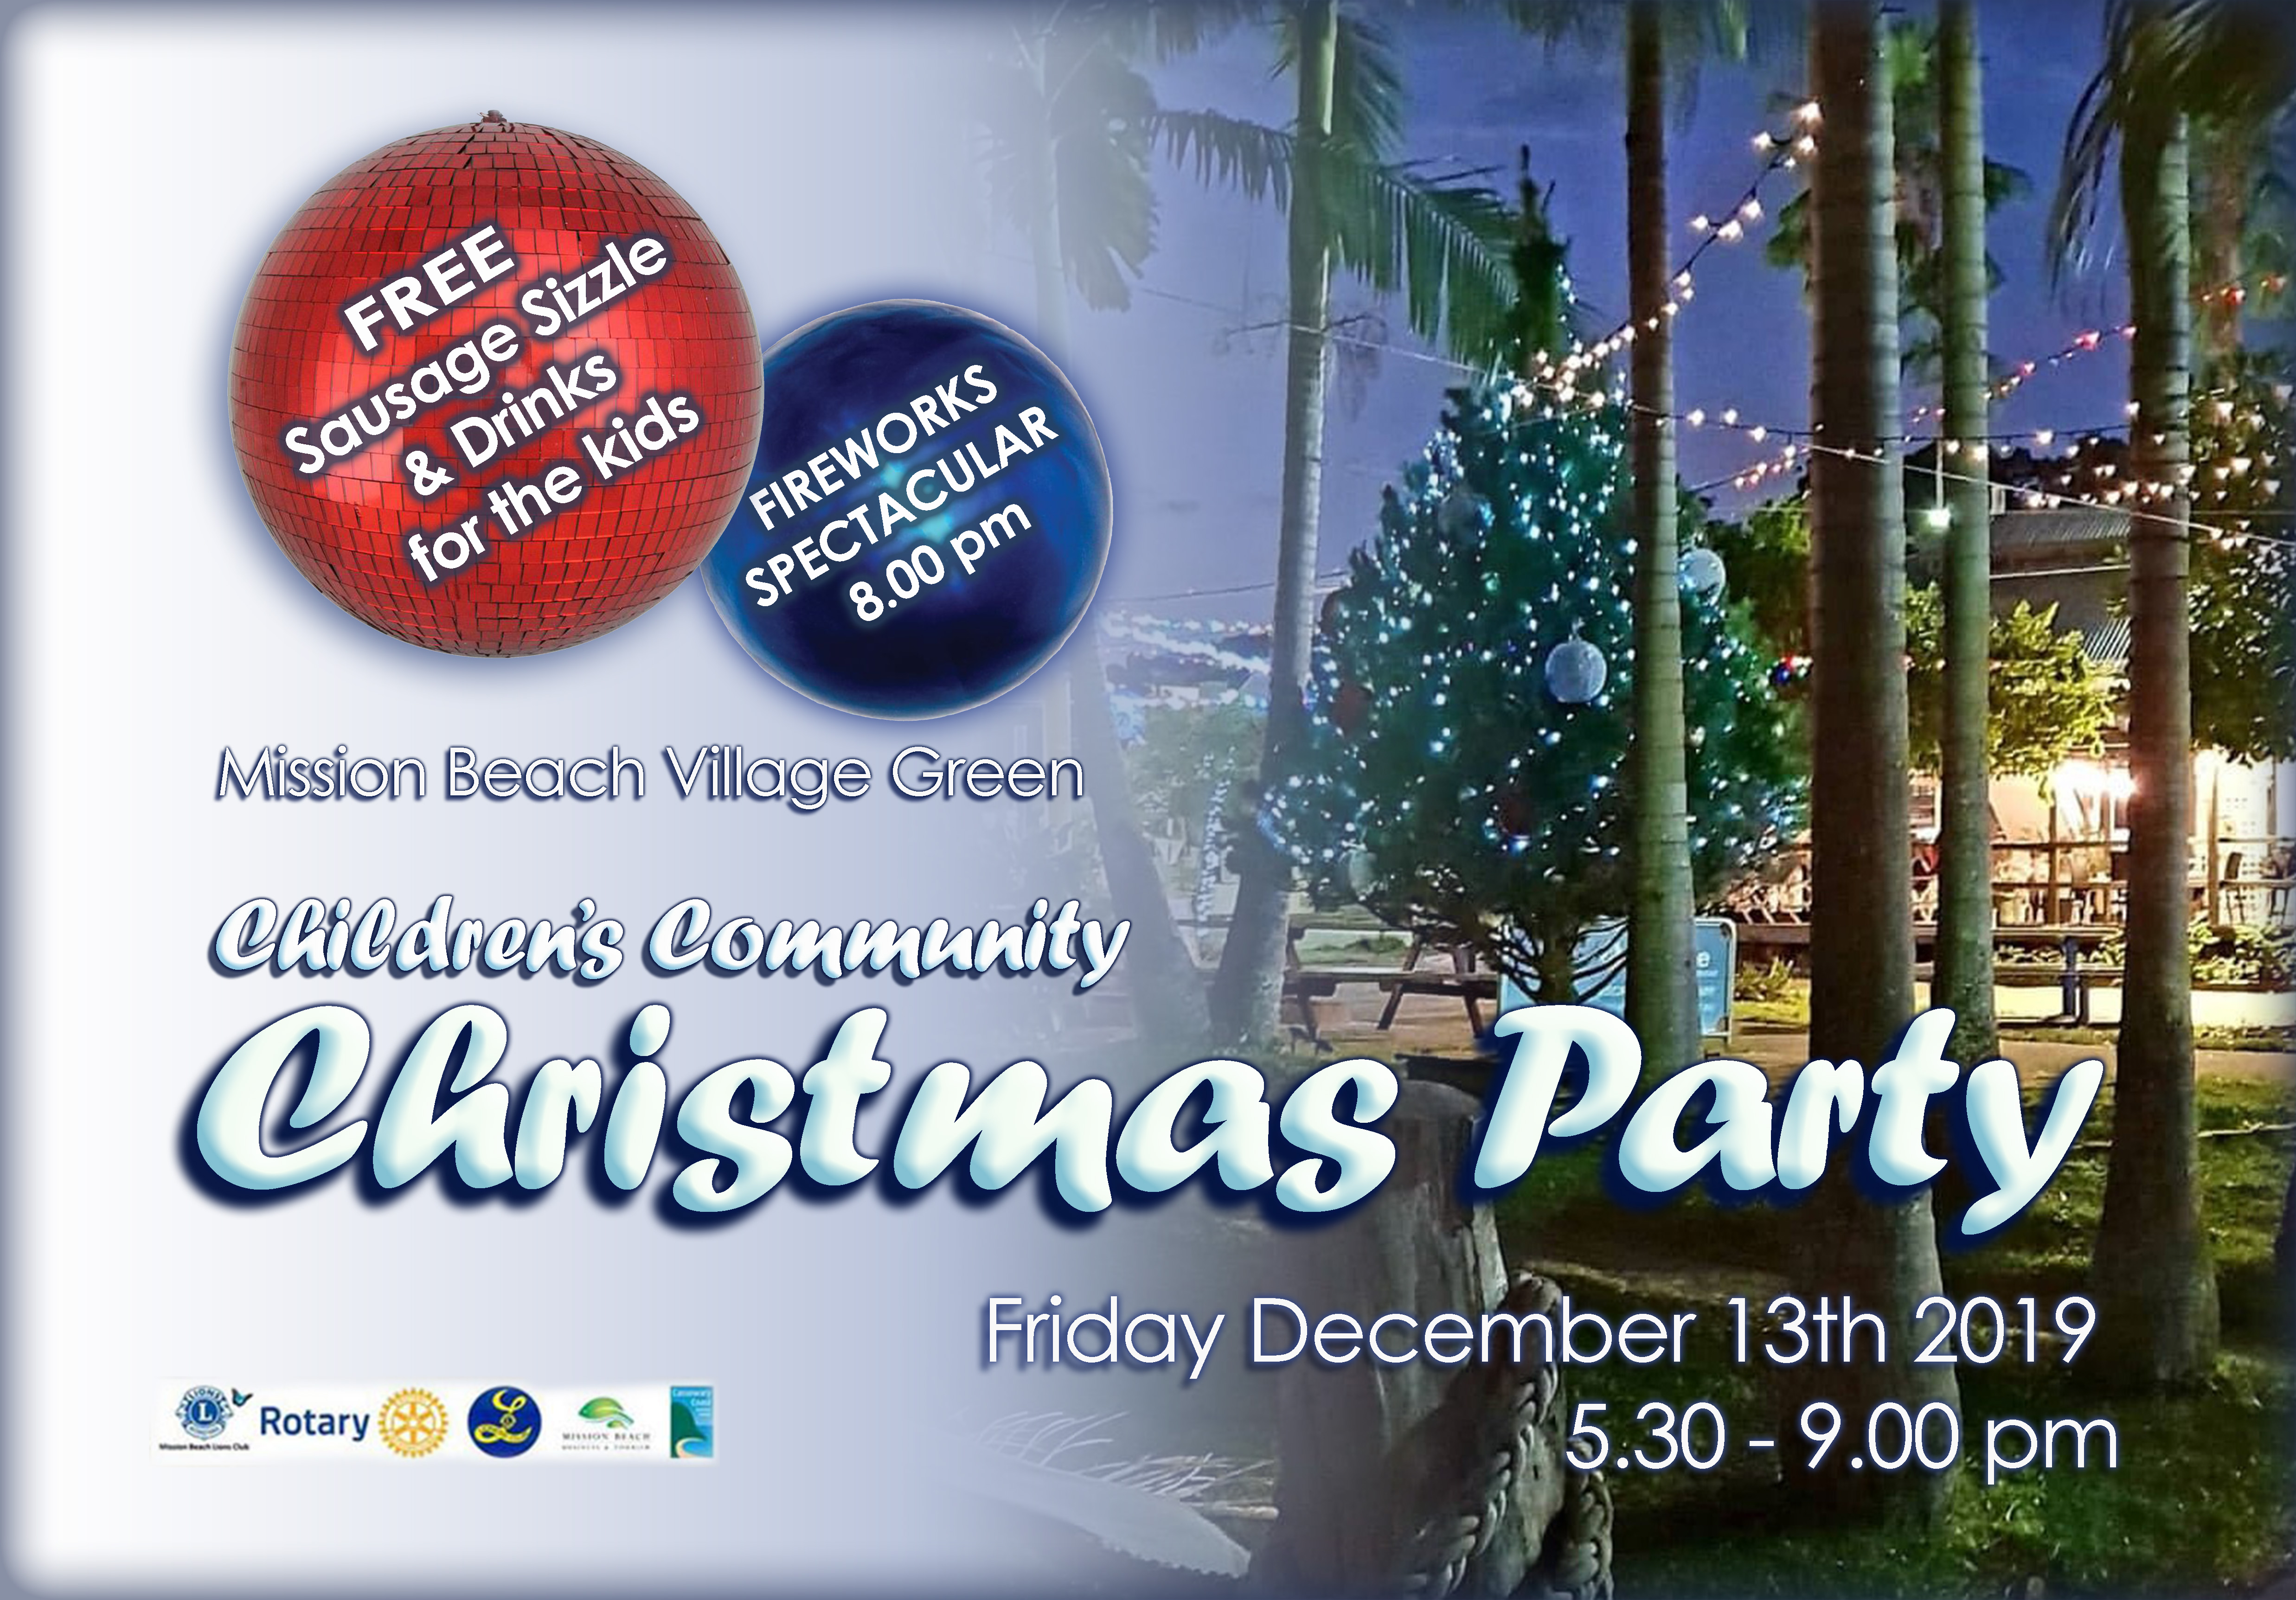 Mission Beach Village Green Christmas Party Mission Beach Tourism